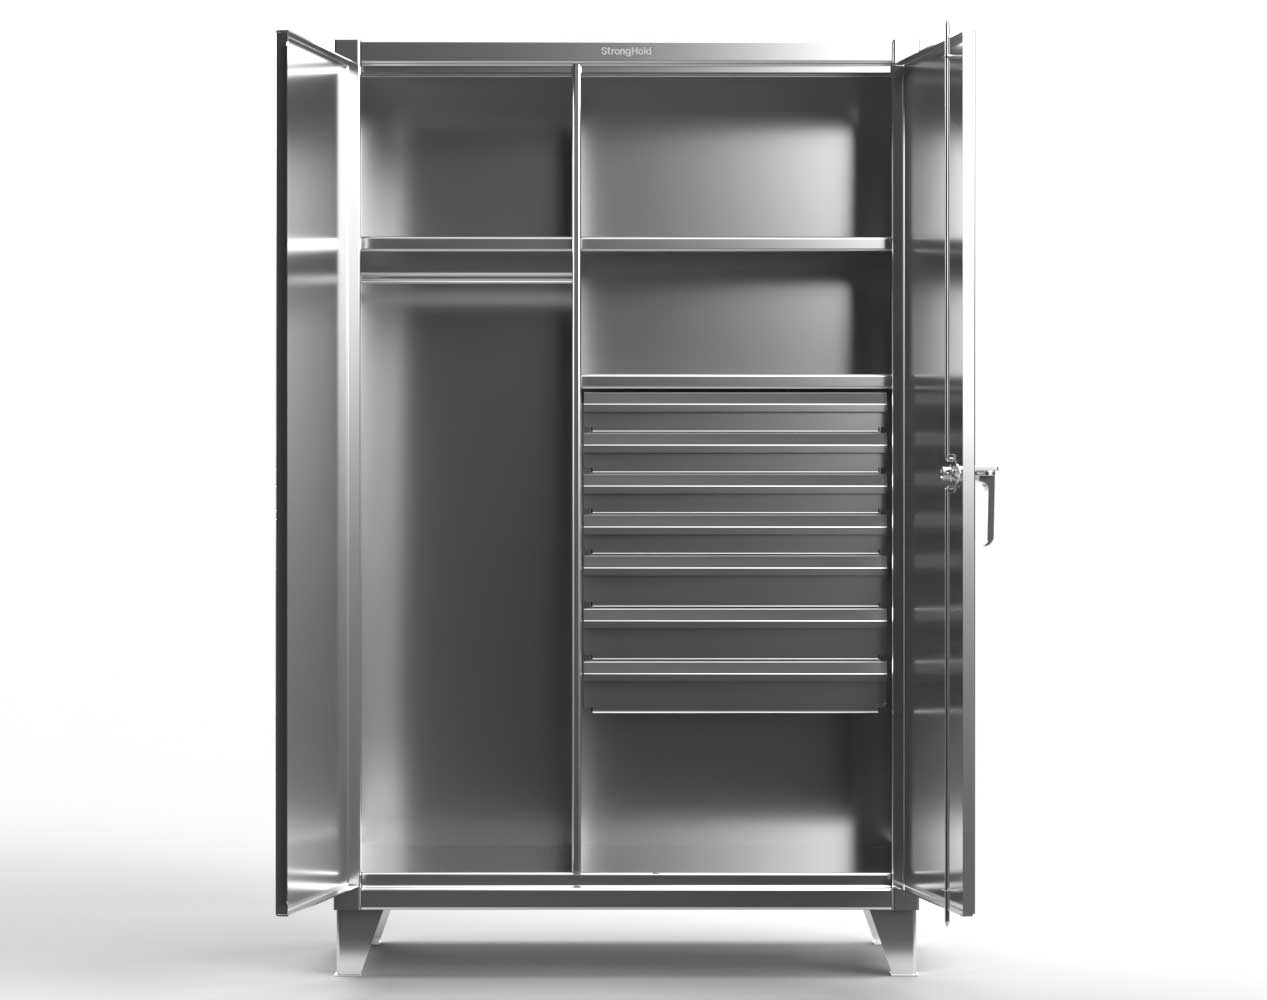 Extra Heavy Duty 12 GA Stainless Steel Wardrobe Cabinet with 7 Drawers, 3 Shelves – 36 In. W x 24 In. D x 78 In. H